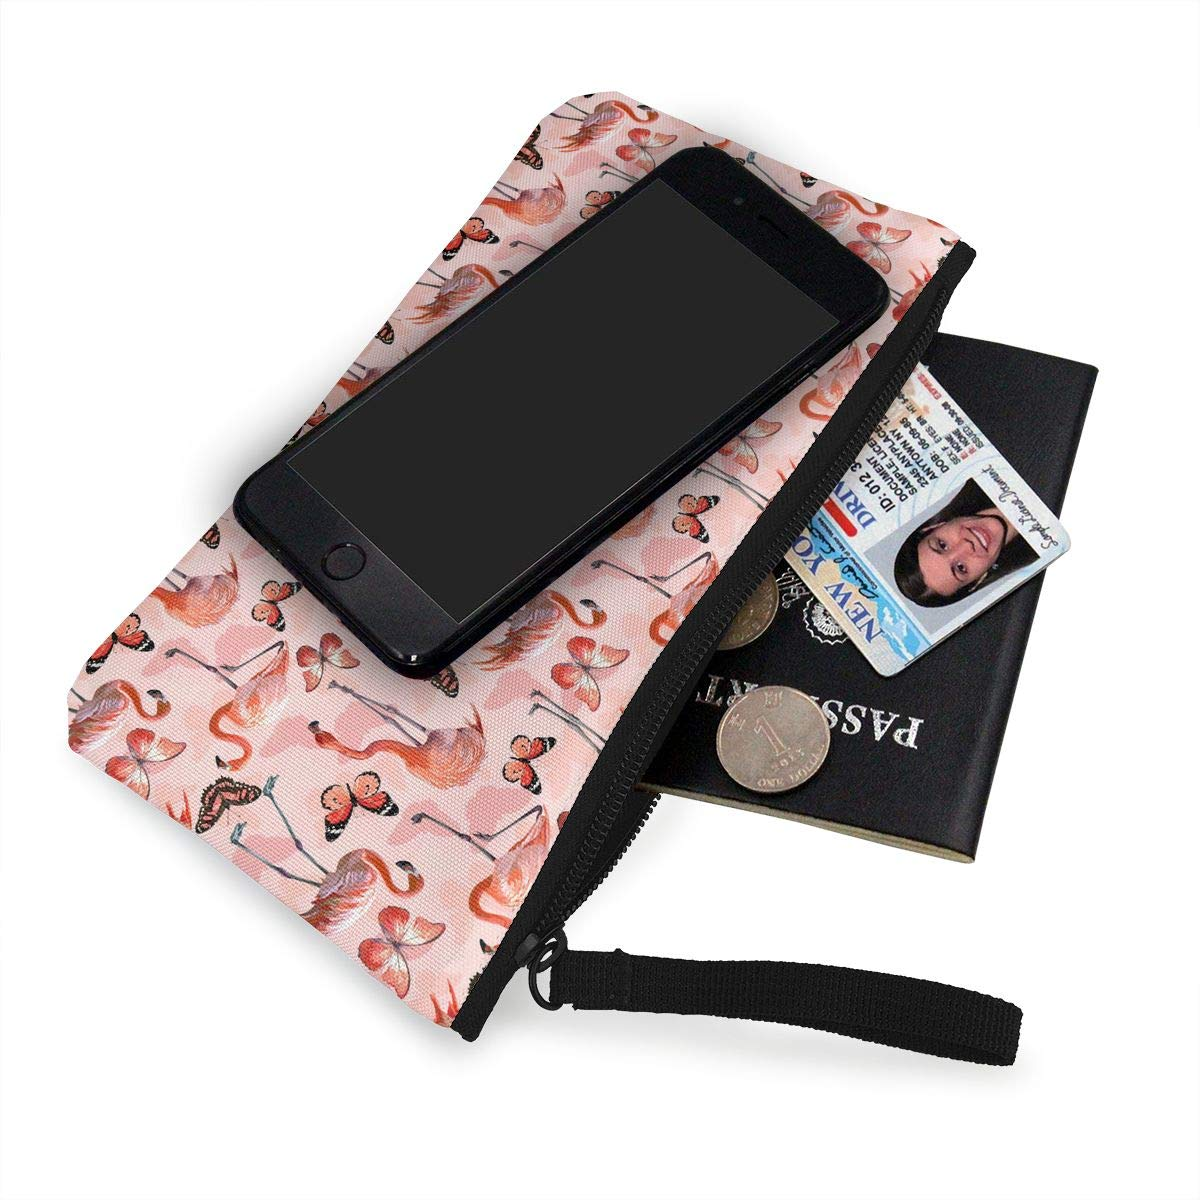 Flamingo and Butterflies Pattern Canvas Coin Purse Cute Change Pouch Wallet Bag Multifunctional Cellphone Bag with Handle